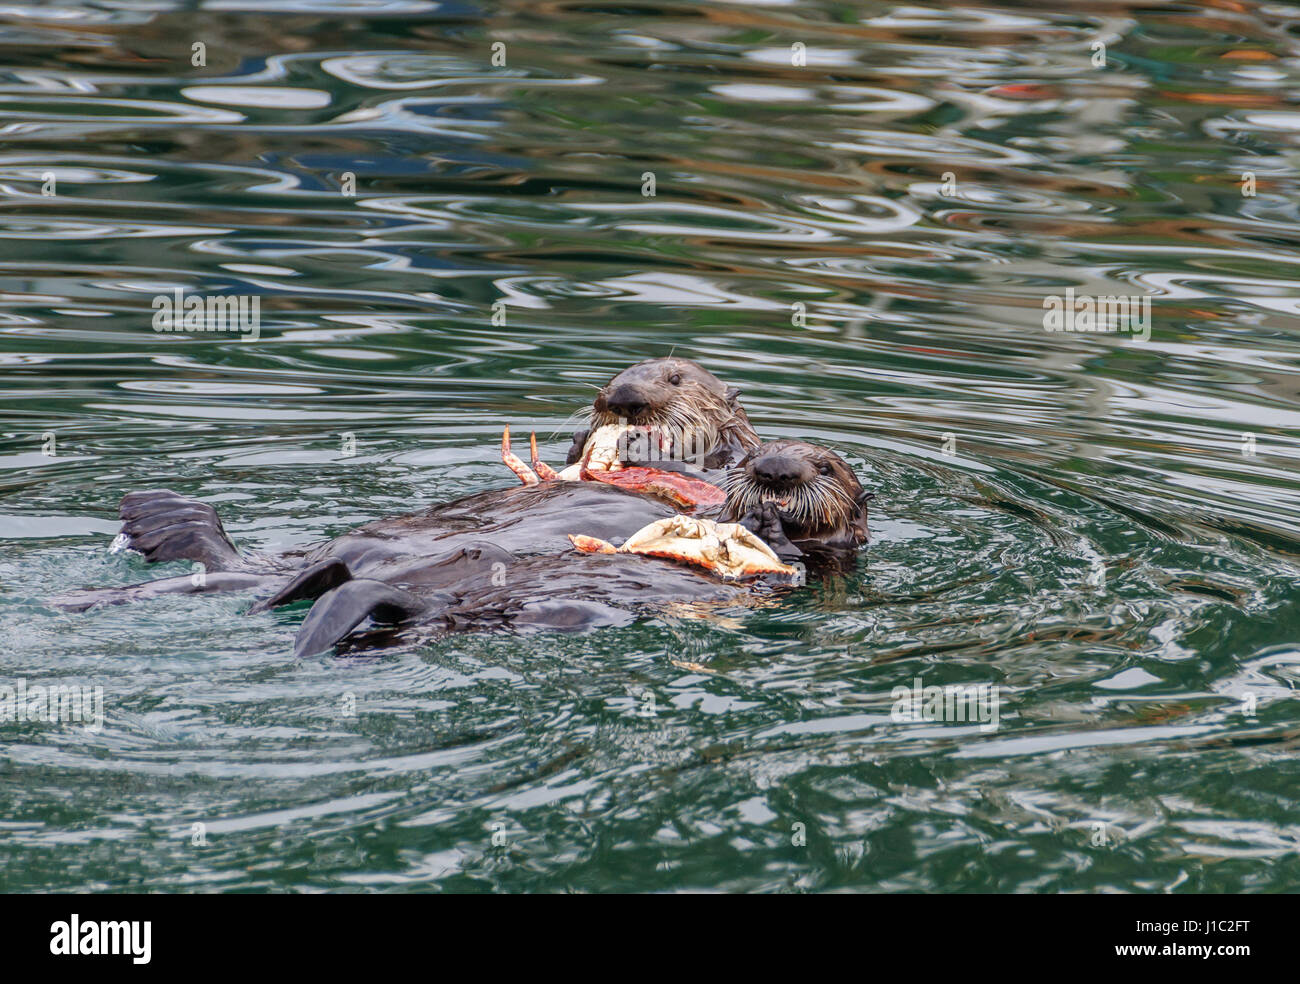 A pair of sea otters floating on their backs in Morro Bay while eating crab, the crab shells resting on their chests - Stock Image